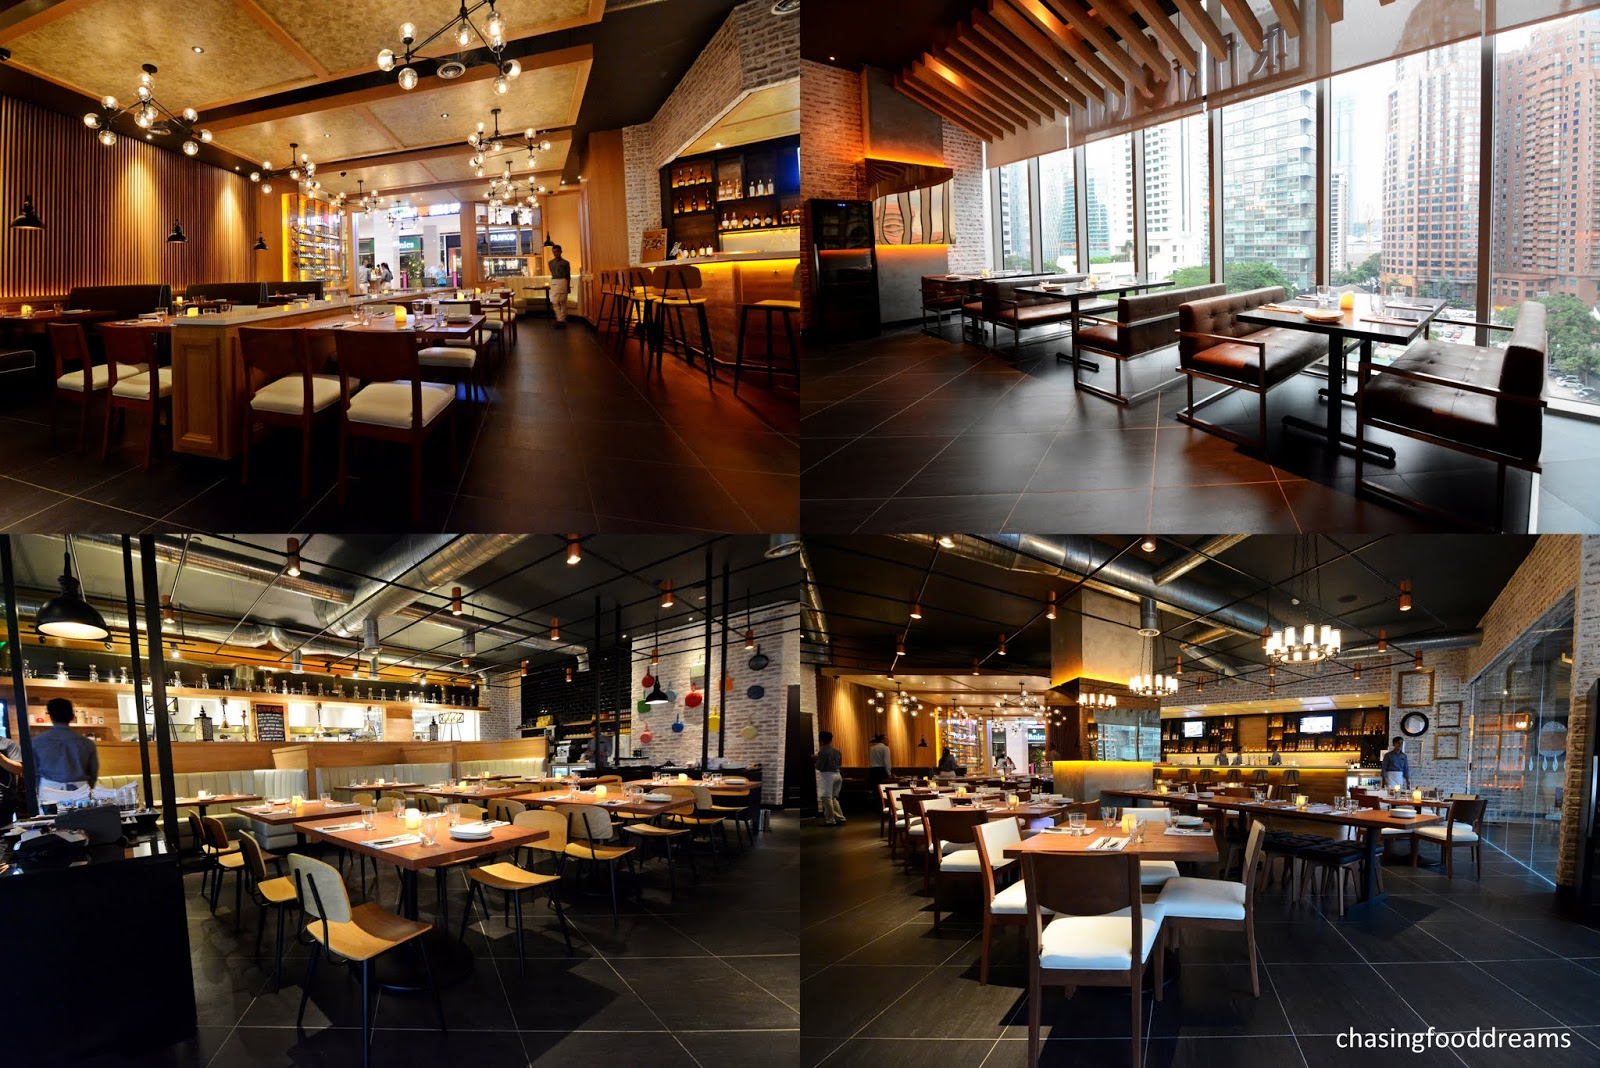 Chasing Food Dreams Tr Fire Grill Pavilion Kl Voucher Makan Tony Roma S Puri Px Pavillion The American Bistro Is Bringing A Taste Of Cuisine To Our Shore Featuring Smoked And Grilled Dishes Using Hickory Wood Theres Plenty Meat